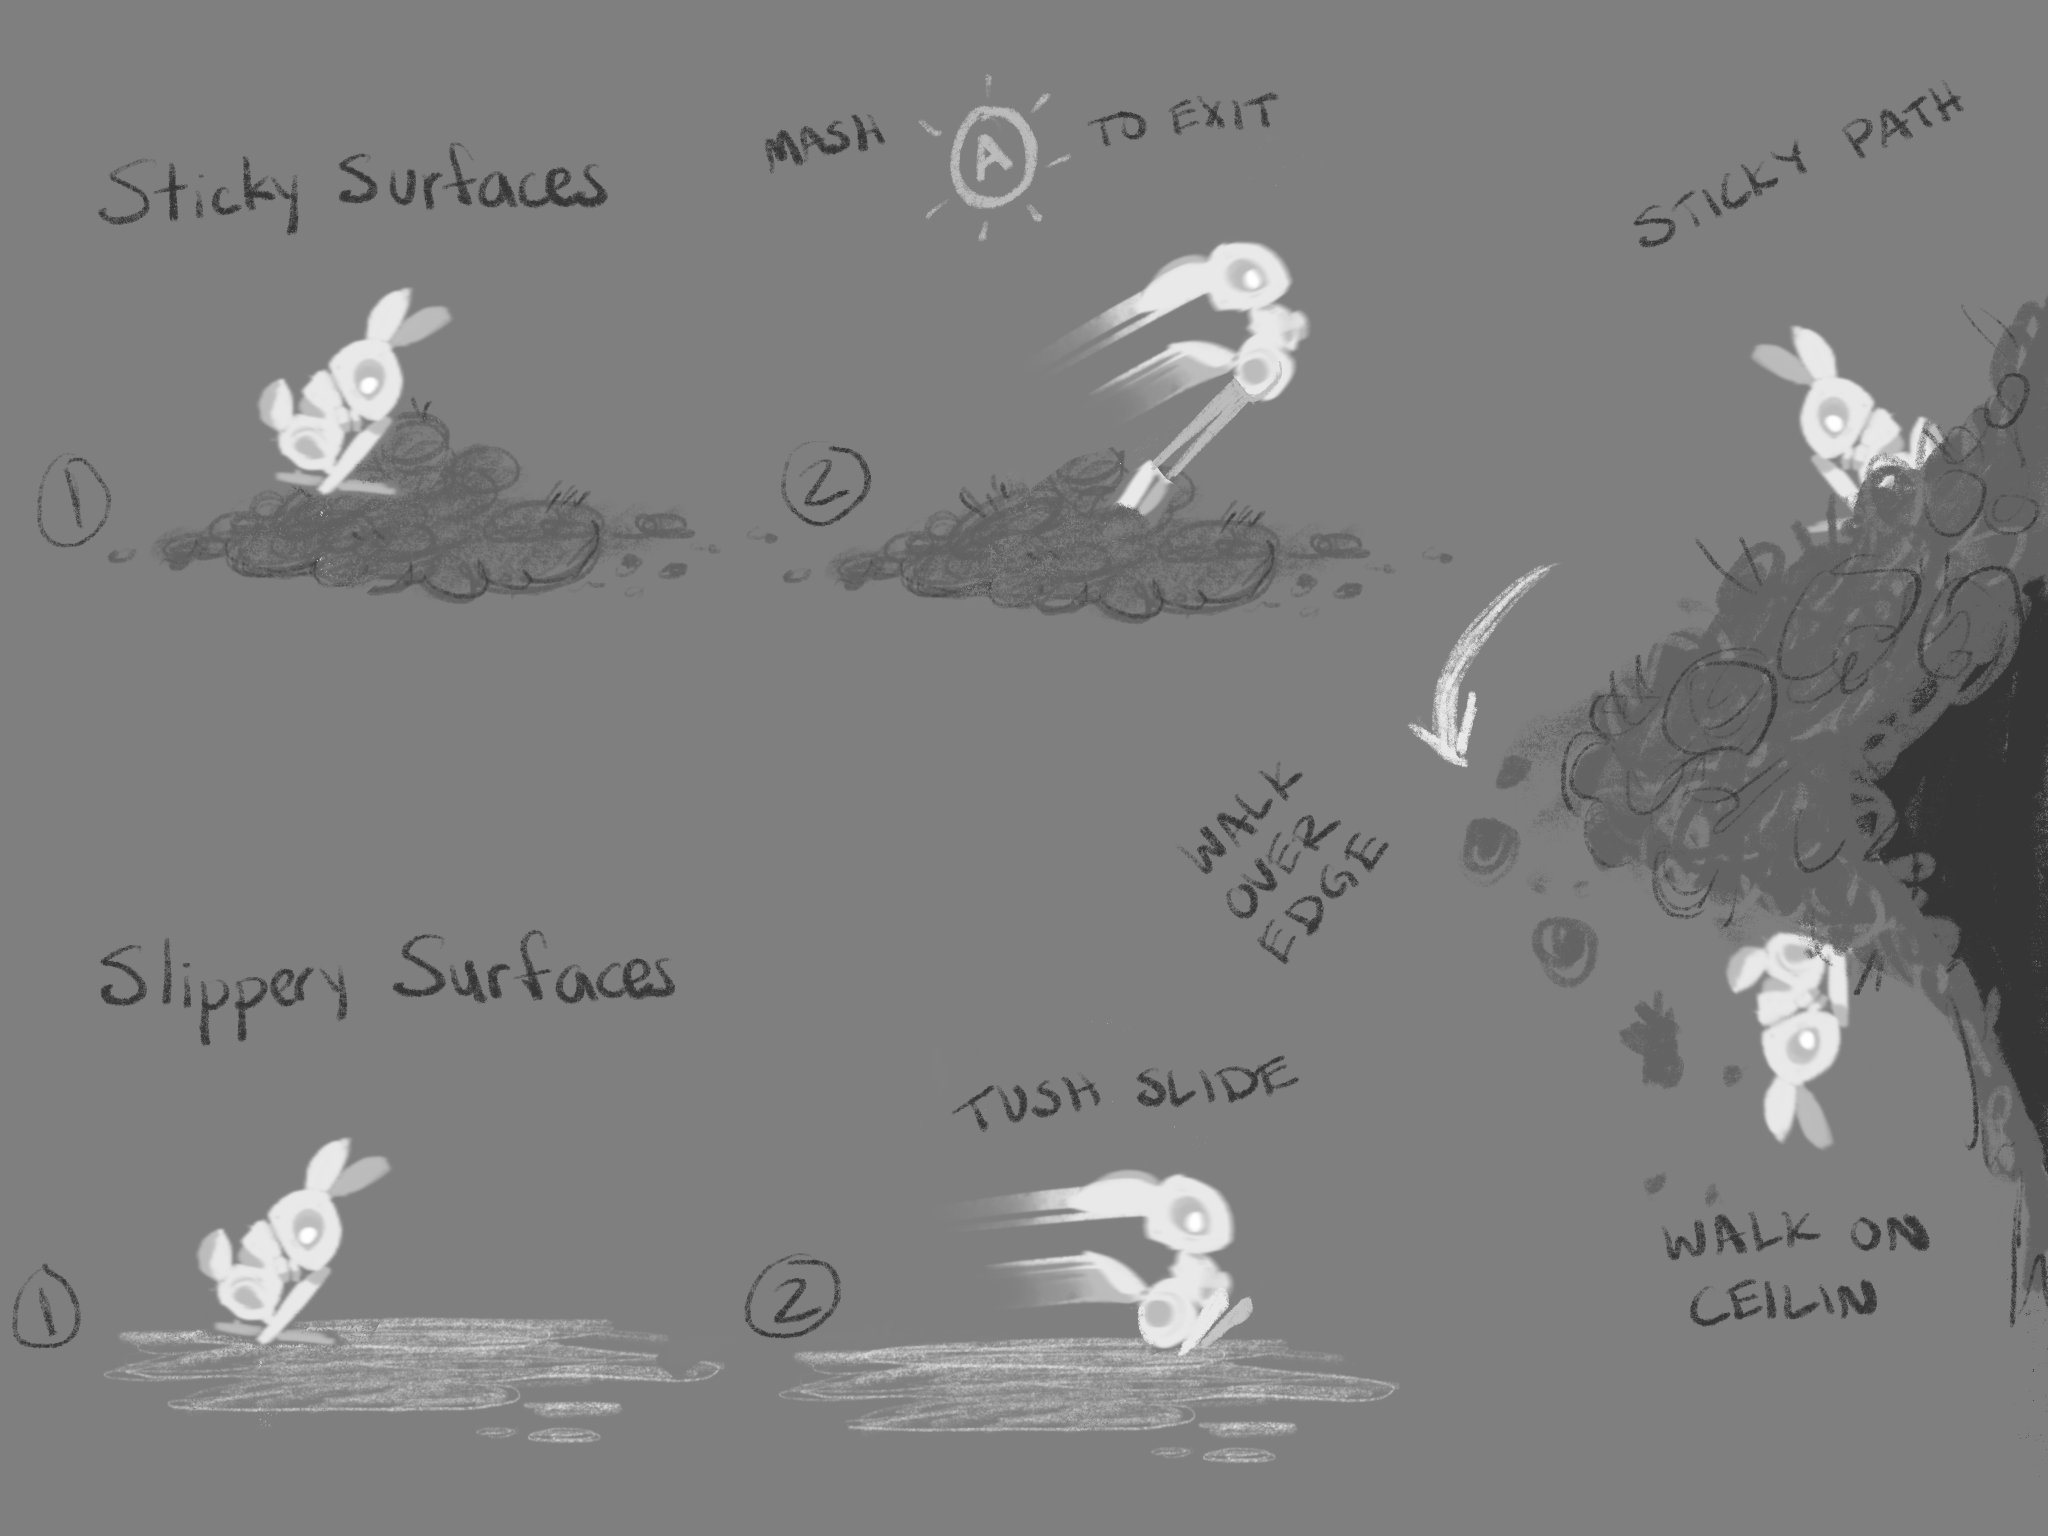 #ThrowbackThursday   Some concept art for how Floppy could interact with sticky and slippery surfaces.  #conceptart #art #indiegame #indiedev #indiegames #gamedev #bunny #tbt https://t.co/SWHdHUpLbk